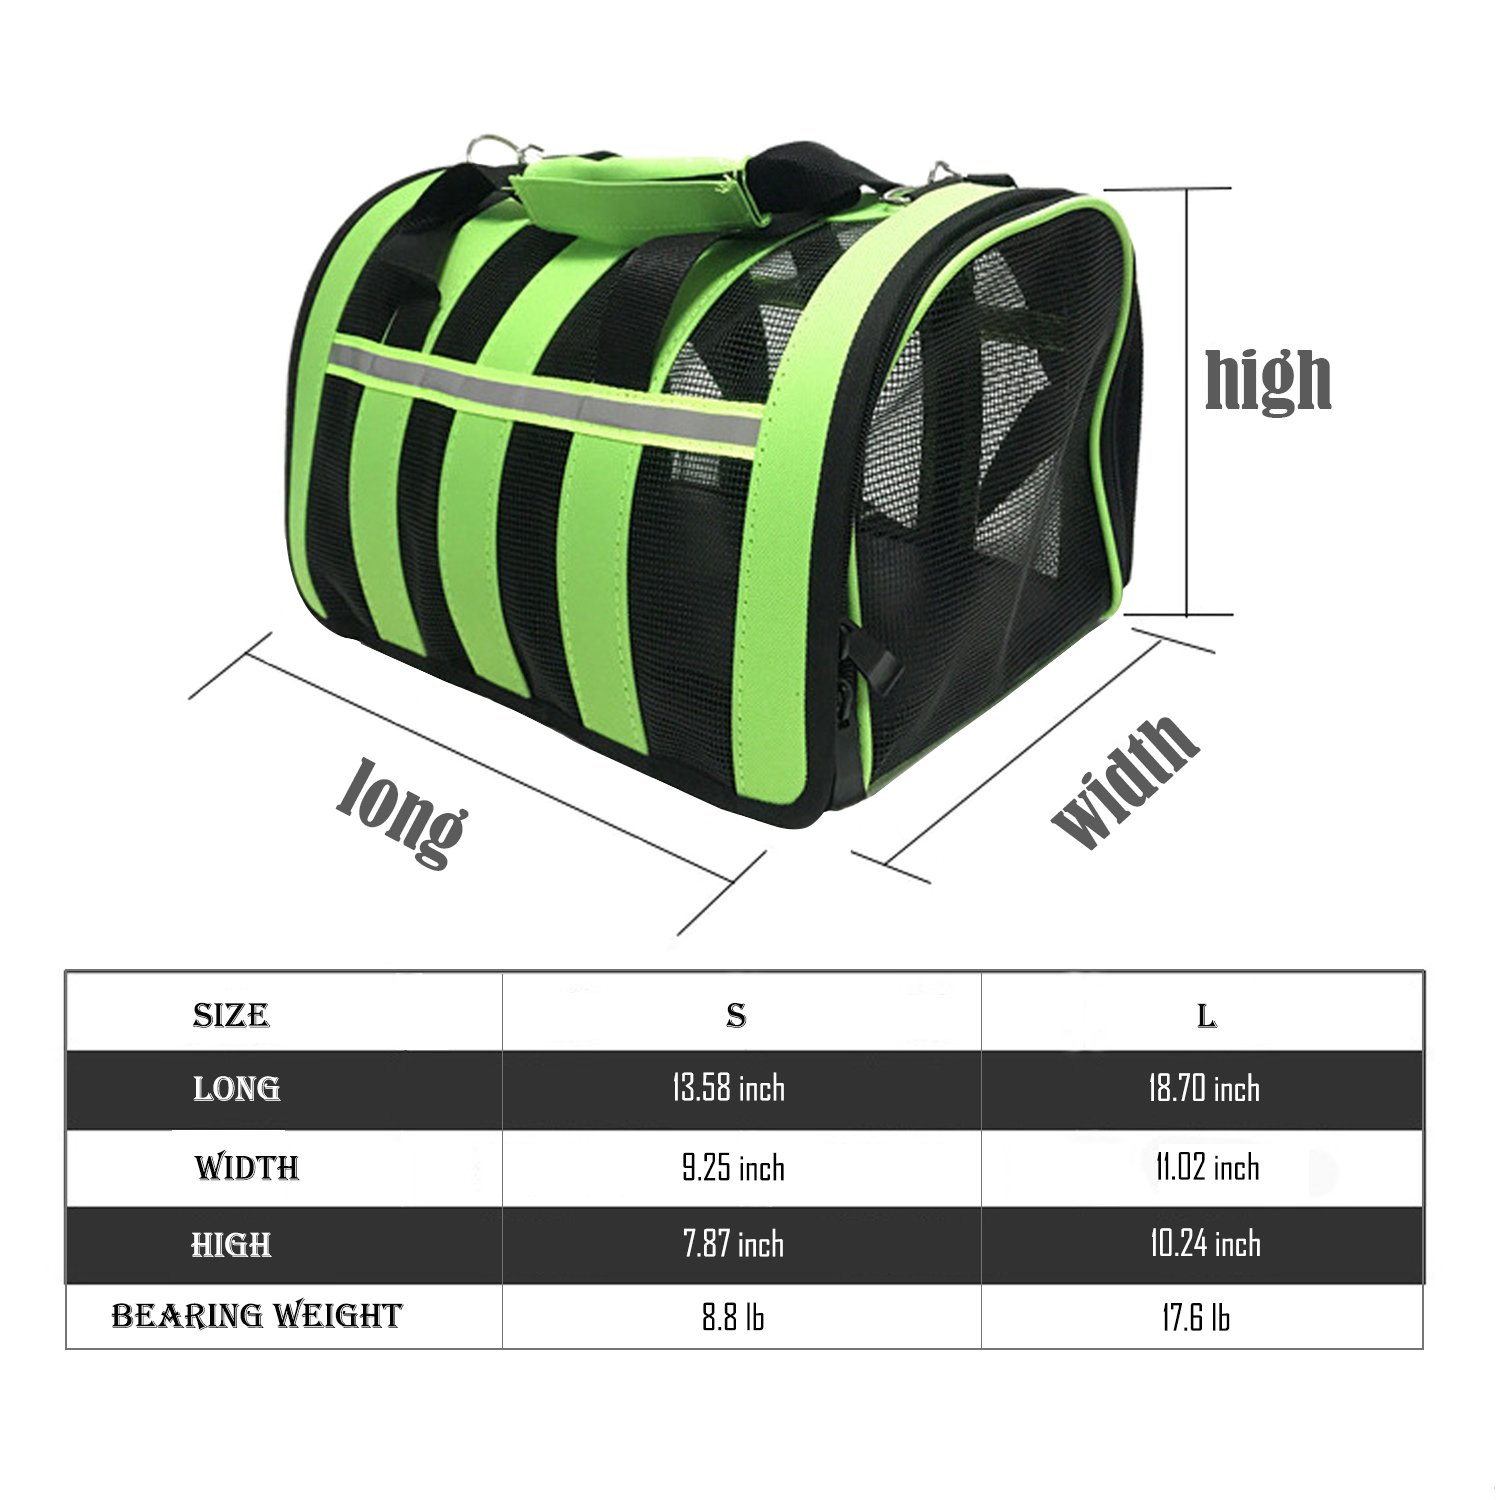 Pet Deluxe Portable Pet Carrier-Small Animals Travel Carrier, Soft Sided Tote Bag Purse,Airline Approved, Perfect for Small Dogs,Puppy, Cats (S) by Pet Deluxe (Image #2)